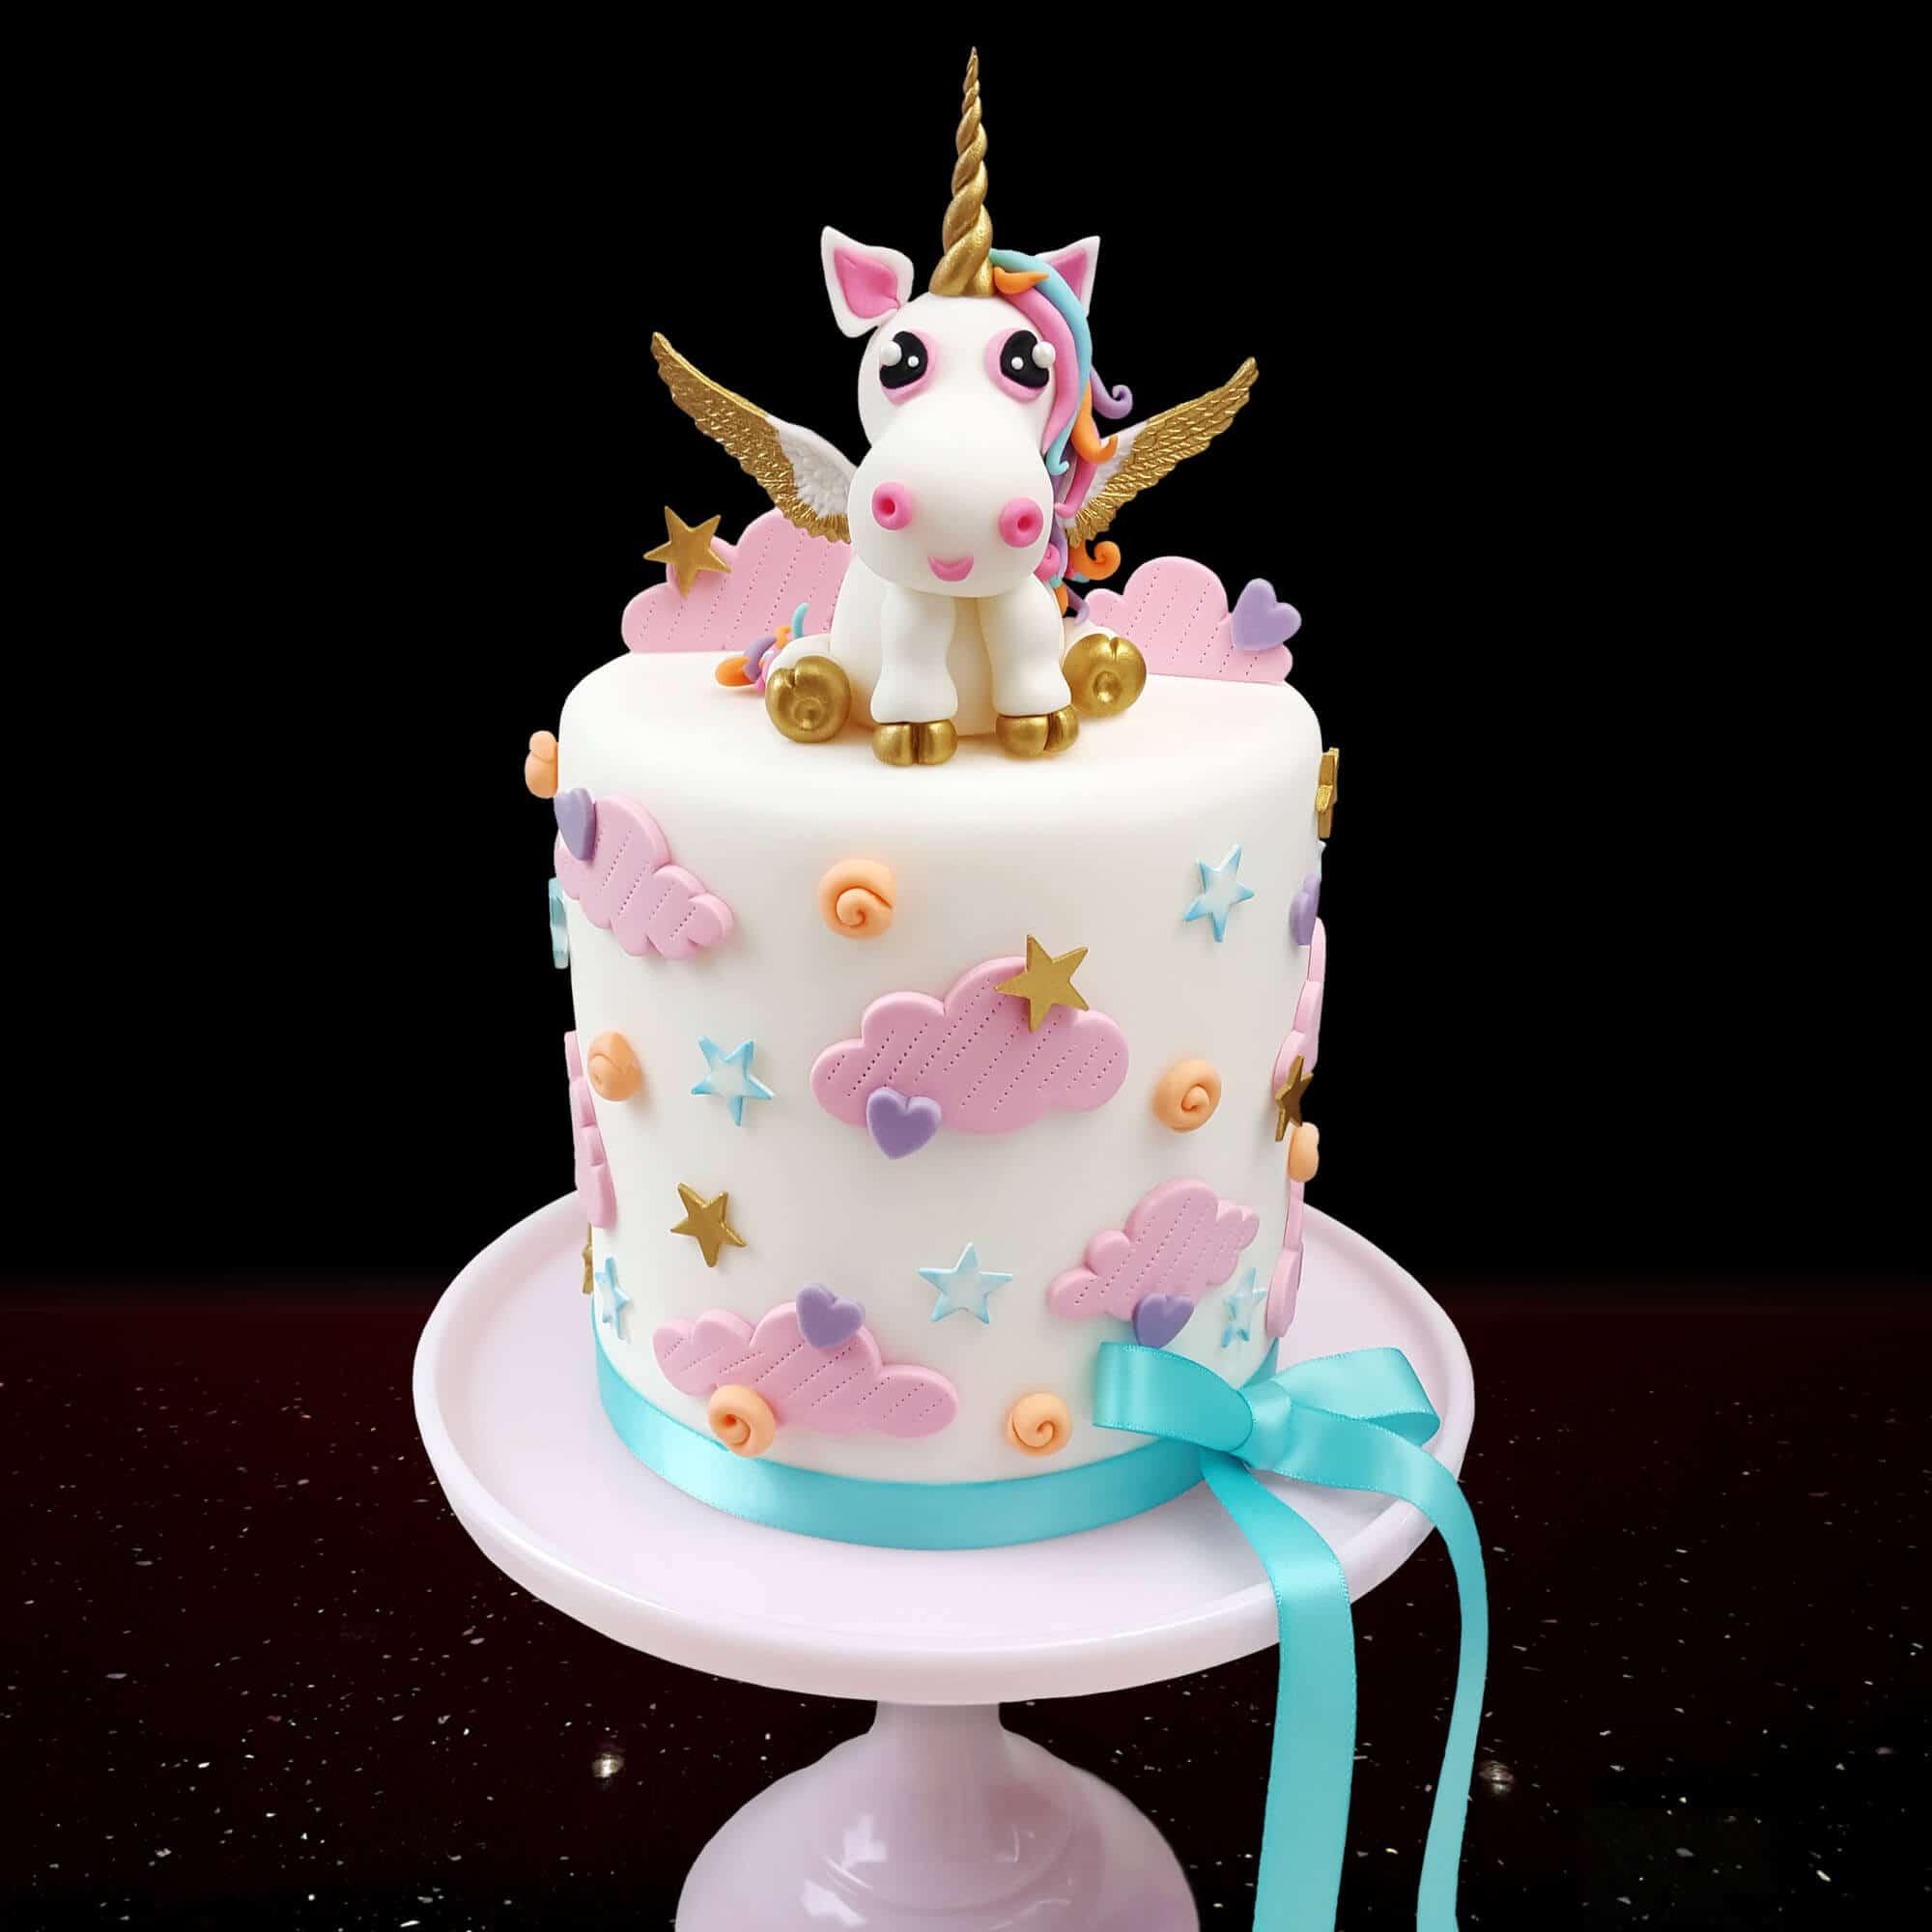 Little unicorn with golden wings cake design by Cake No Mistake